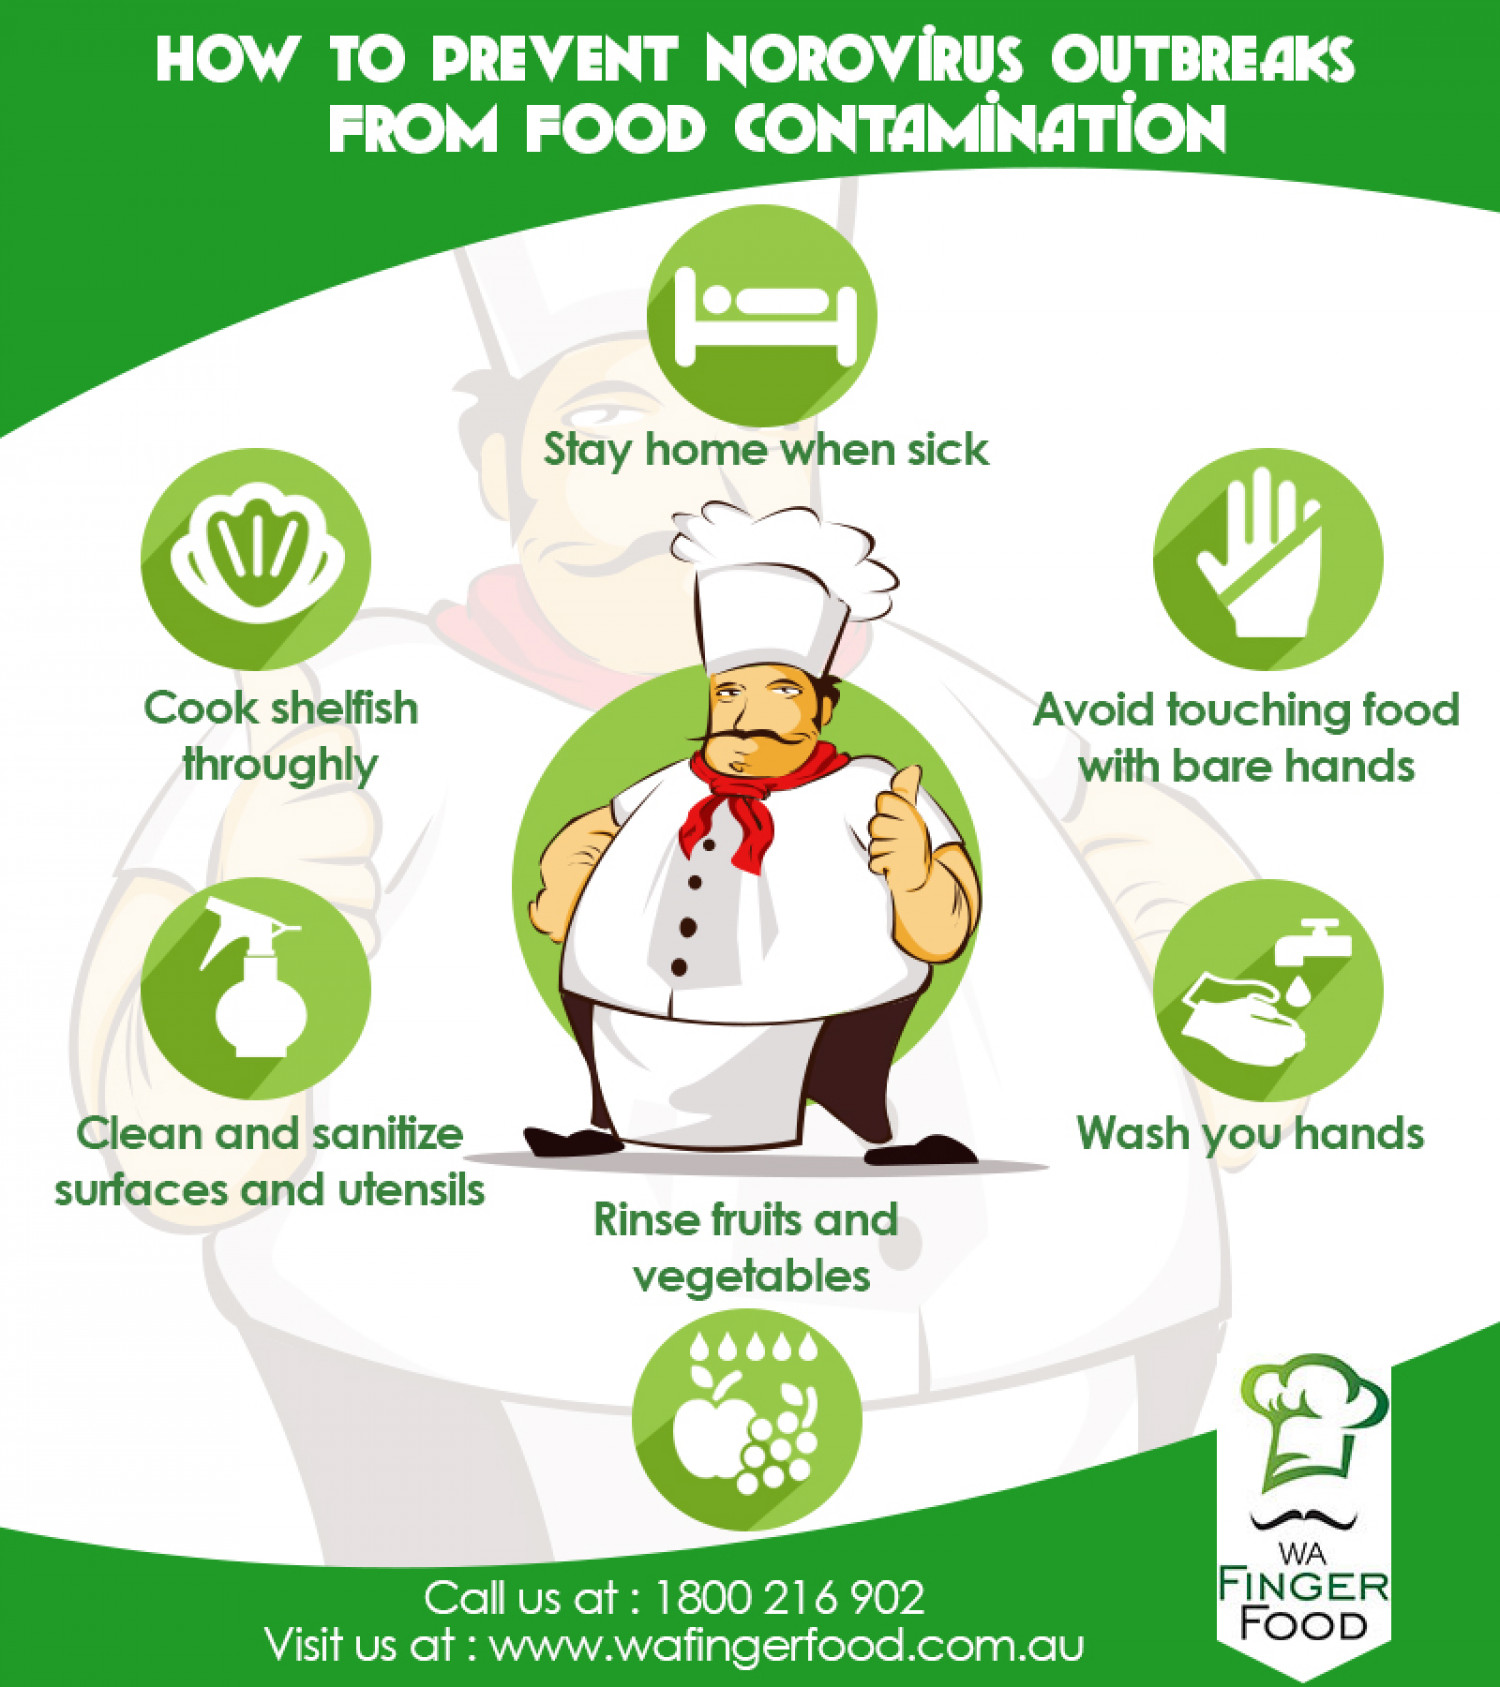 How To Prevent Norovirus Outbreaks from Food Contamination Infographic